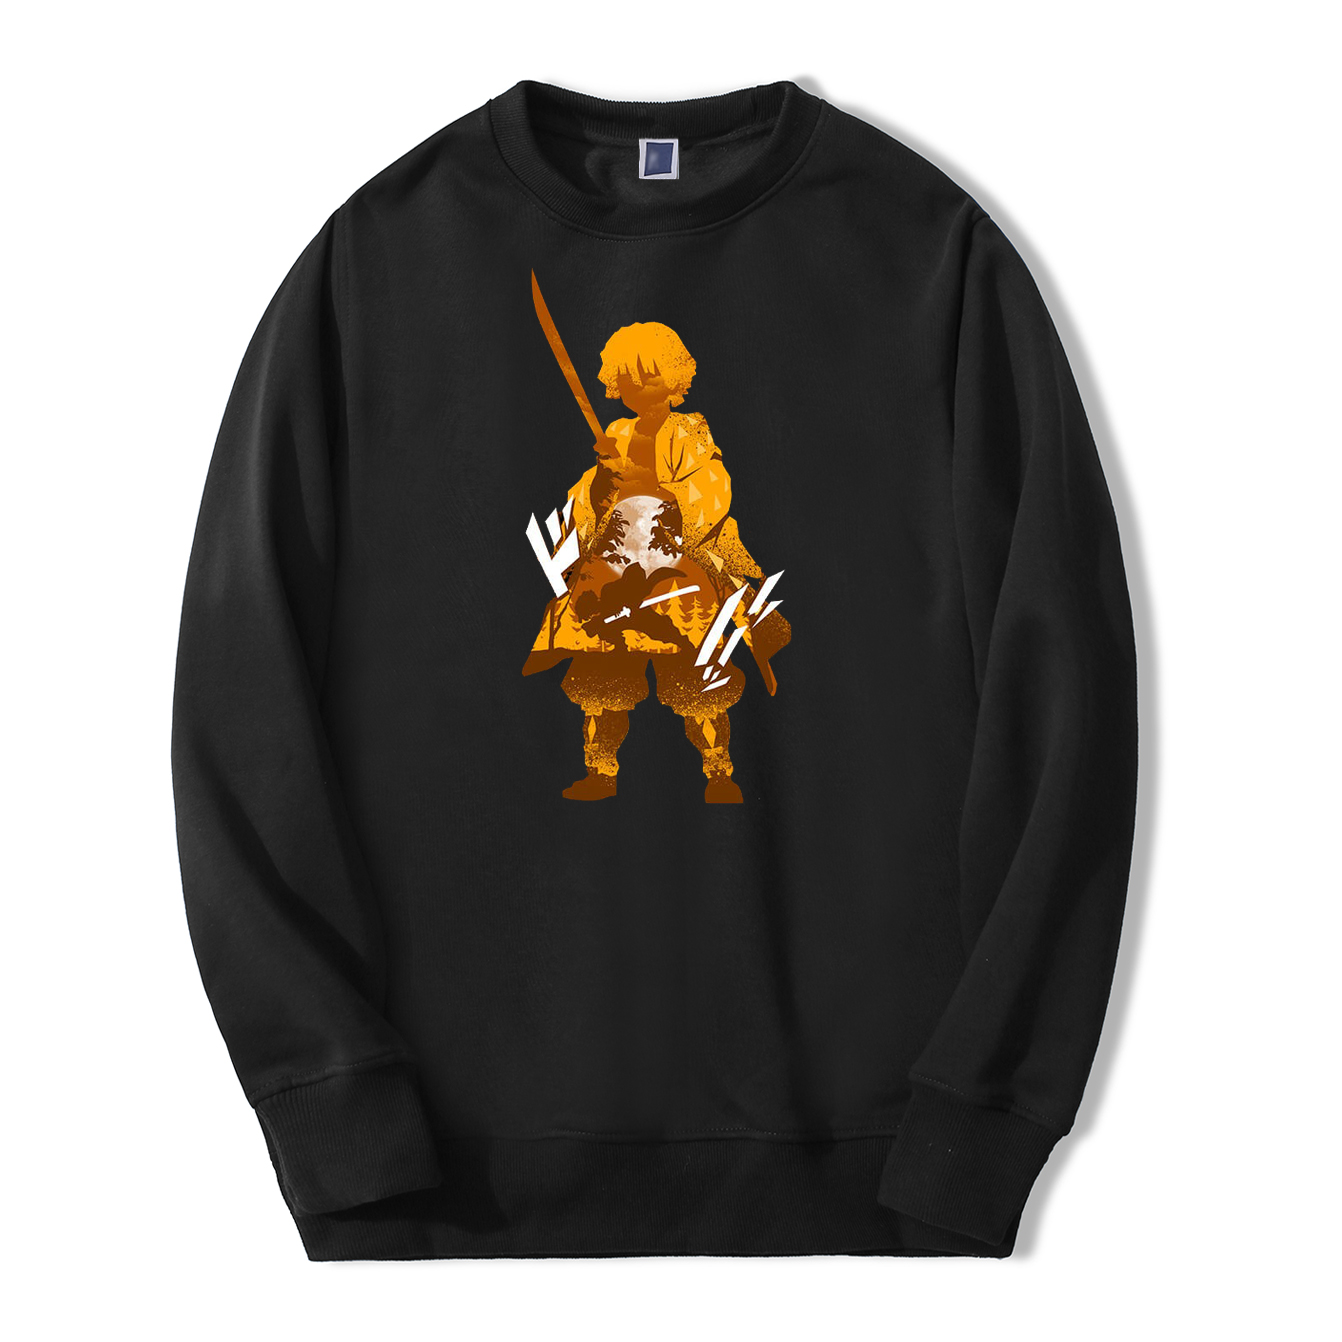 Japan Anime Demon Slayer Men Sweatshirt Hoodies 2020 Spring Autumn Casual Zenitsu Streetwear Loose Fit Hip Hop Fashoin Pullover